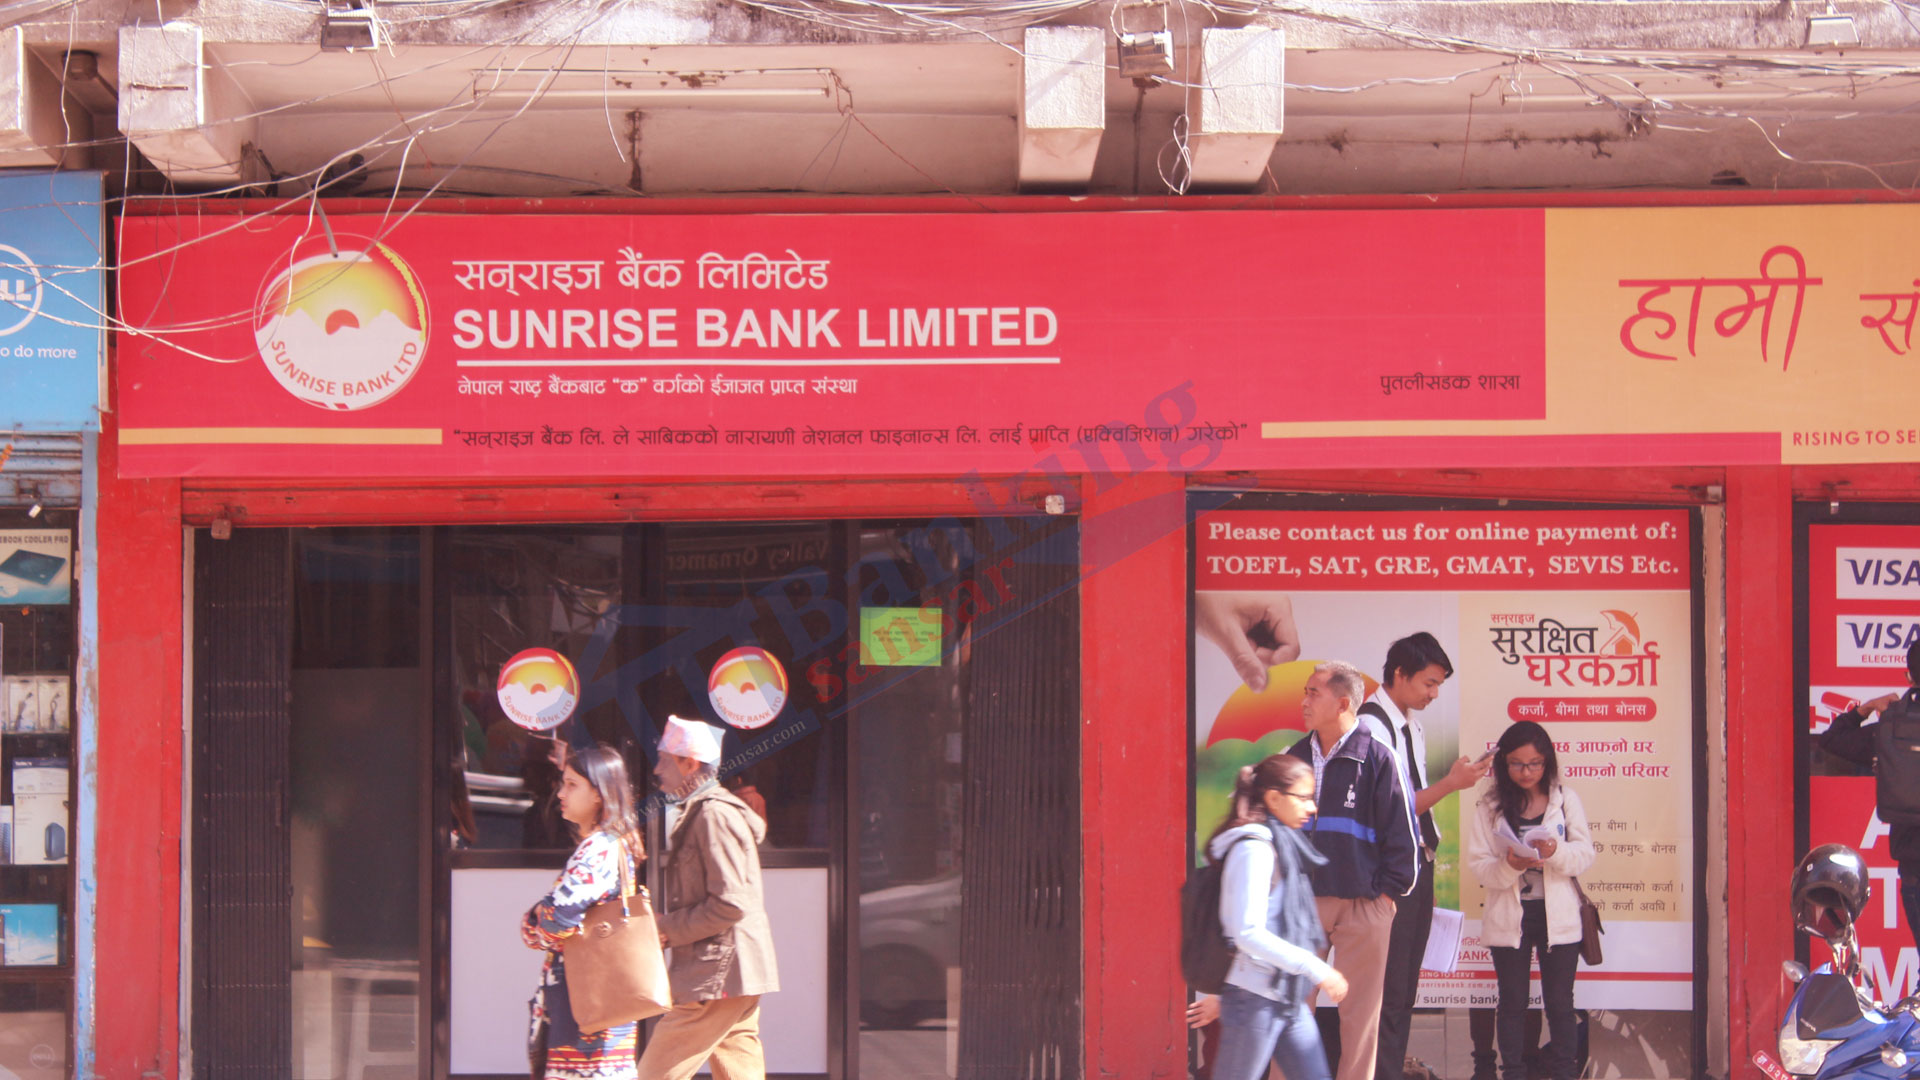 Sunrise Bank